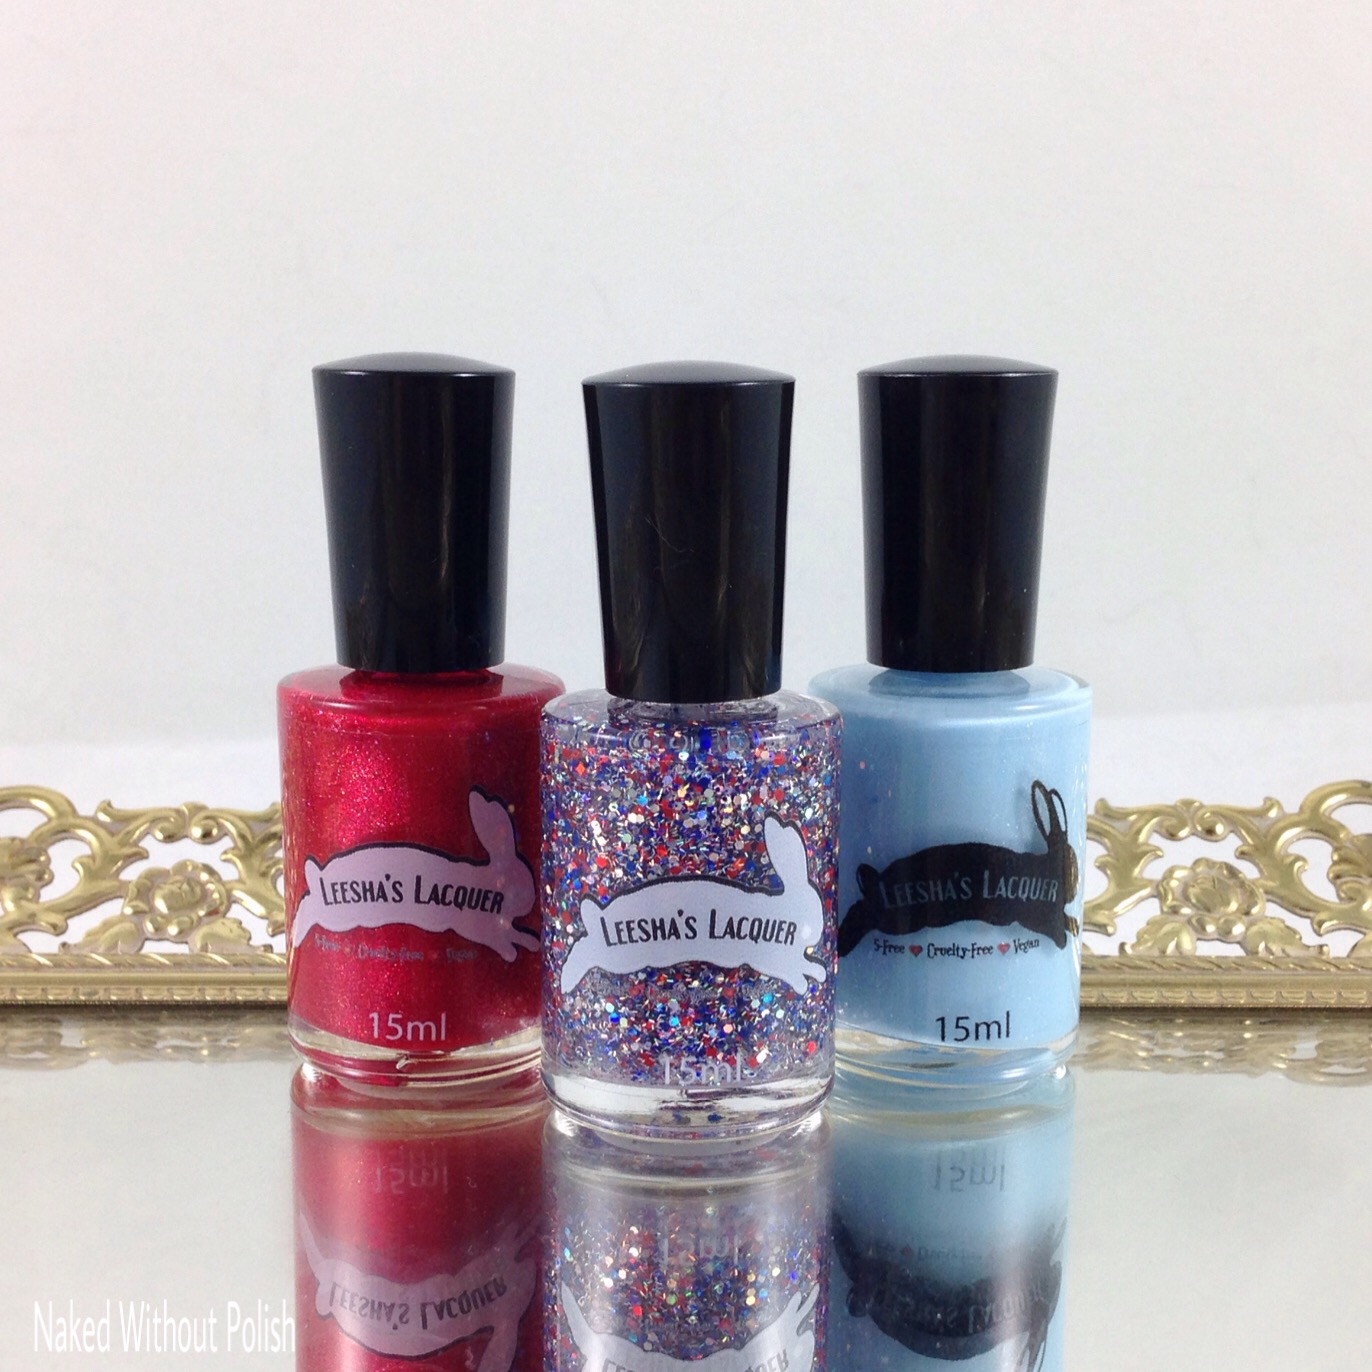 Leeshas-Lacquer-4th-of-July-Trio-1